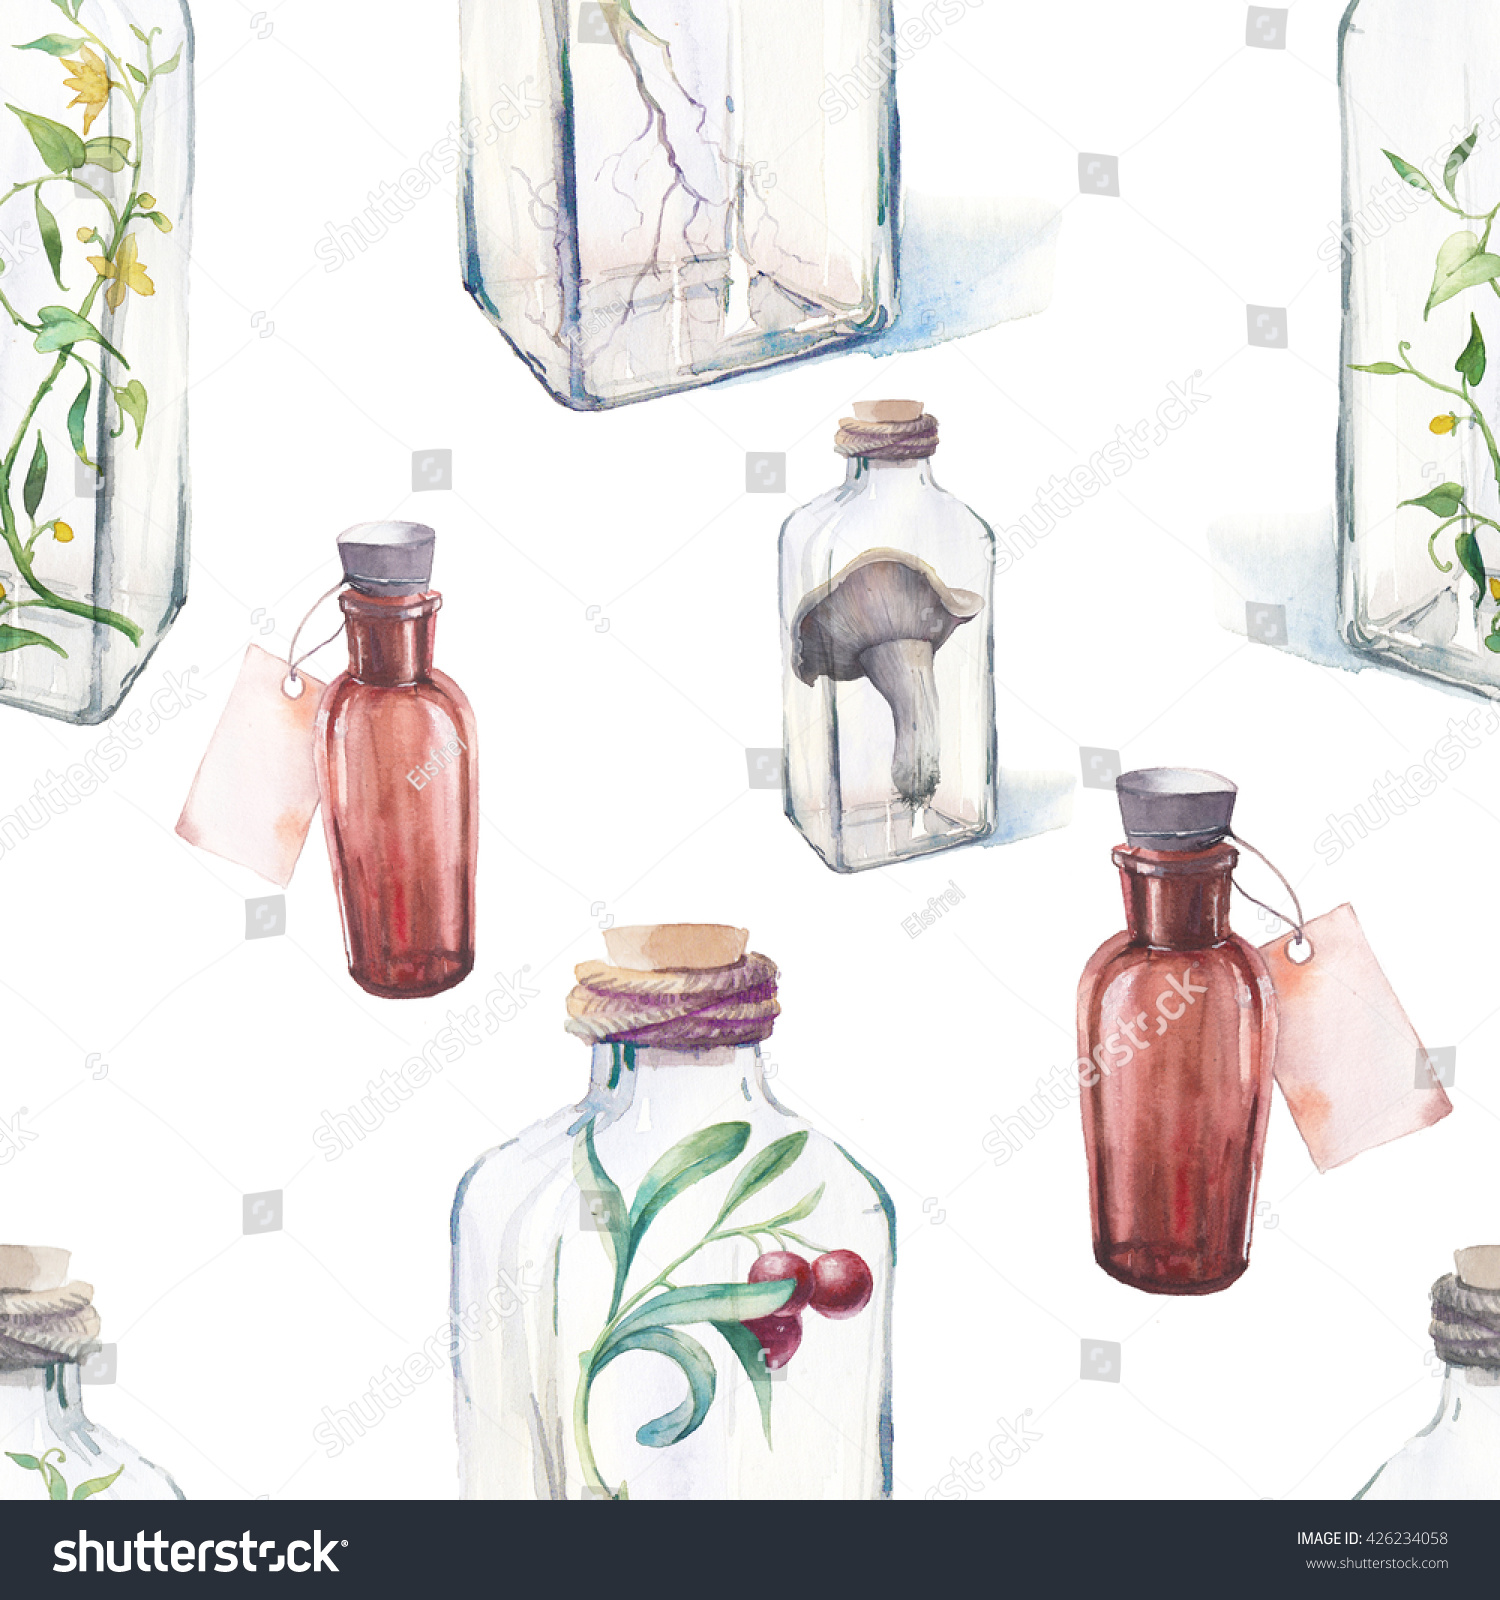 Watercolor vintage seamless pattern glass bottles stock illustration watercolor vintage seamless pattern with glass bottles and plants hand painted repeating texture with antique biocorpaavc Gallery